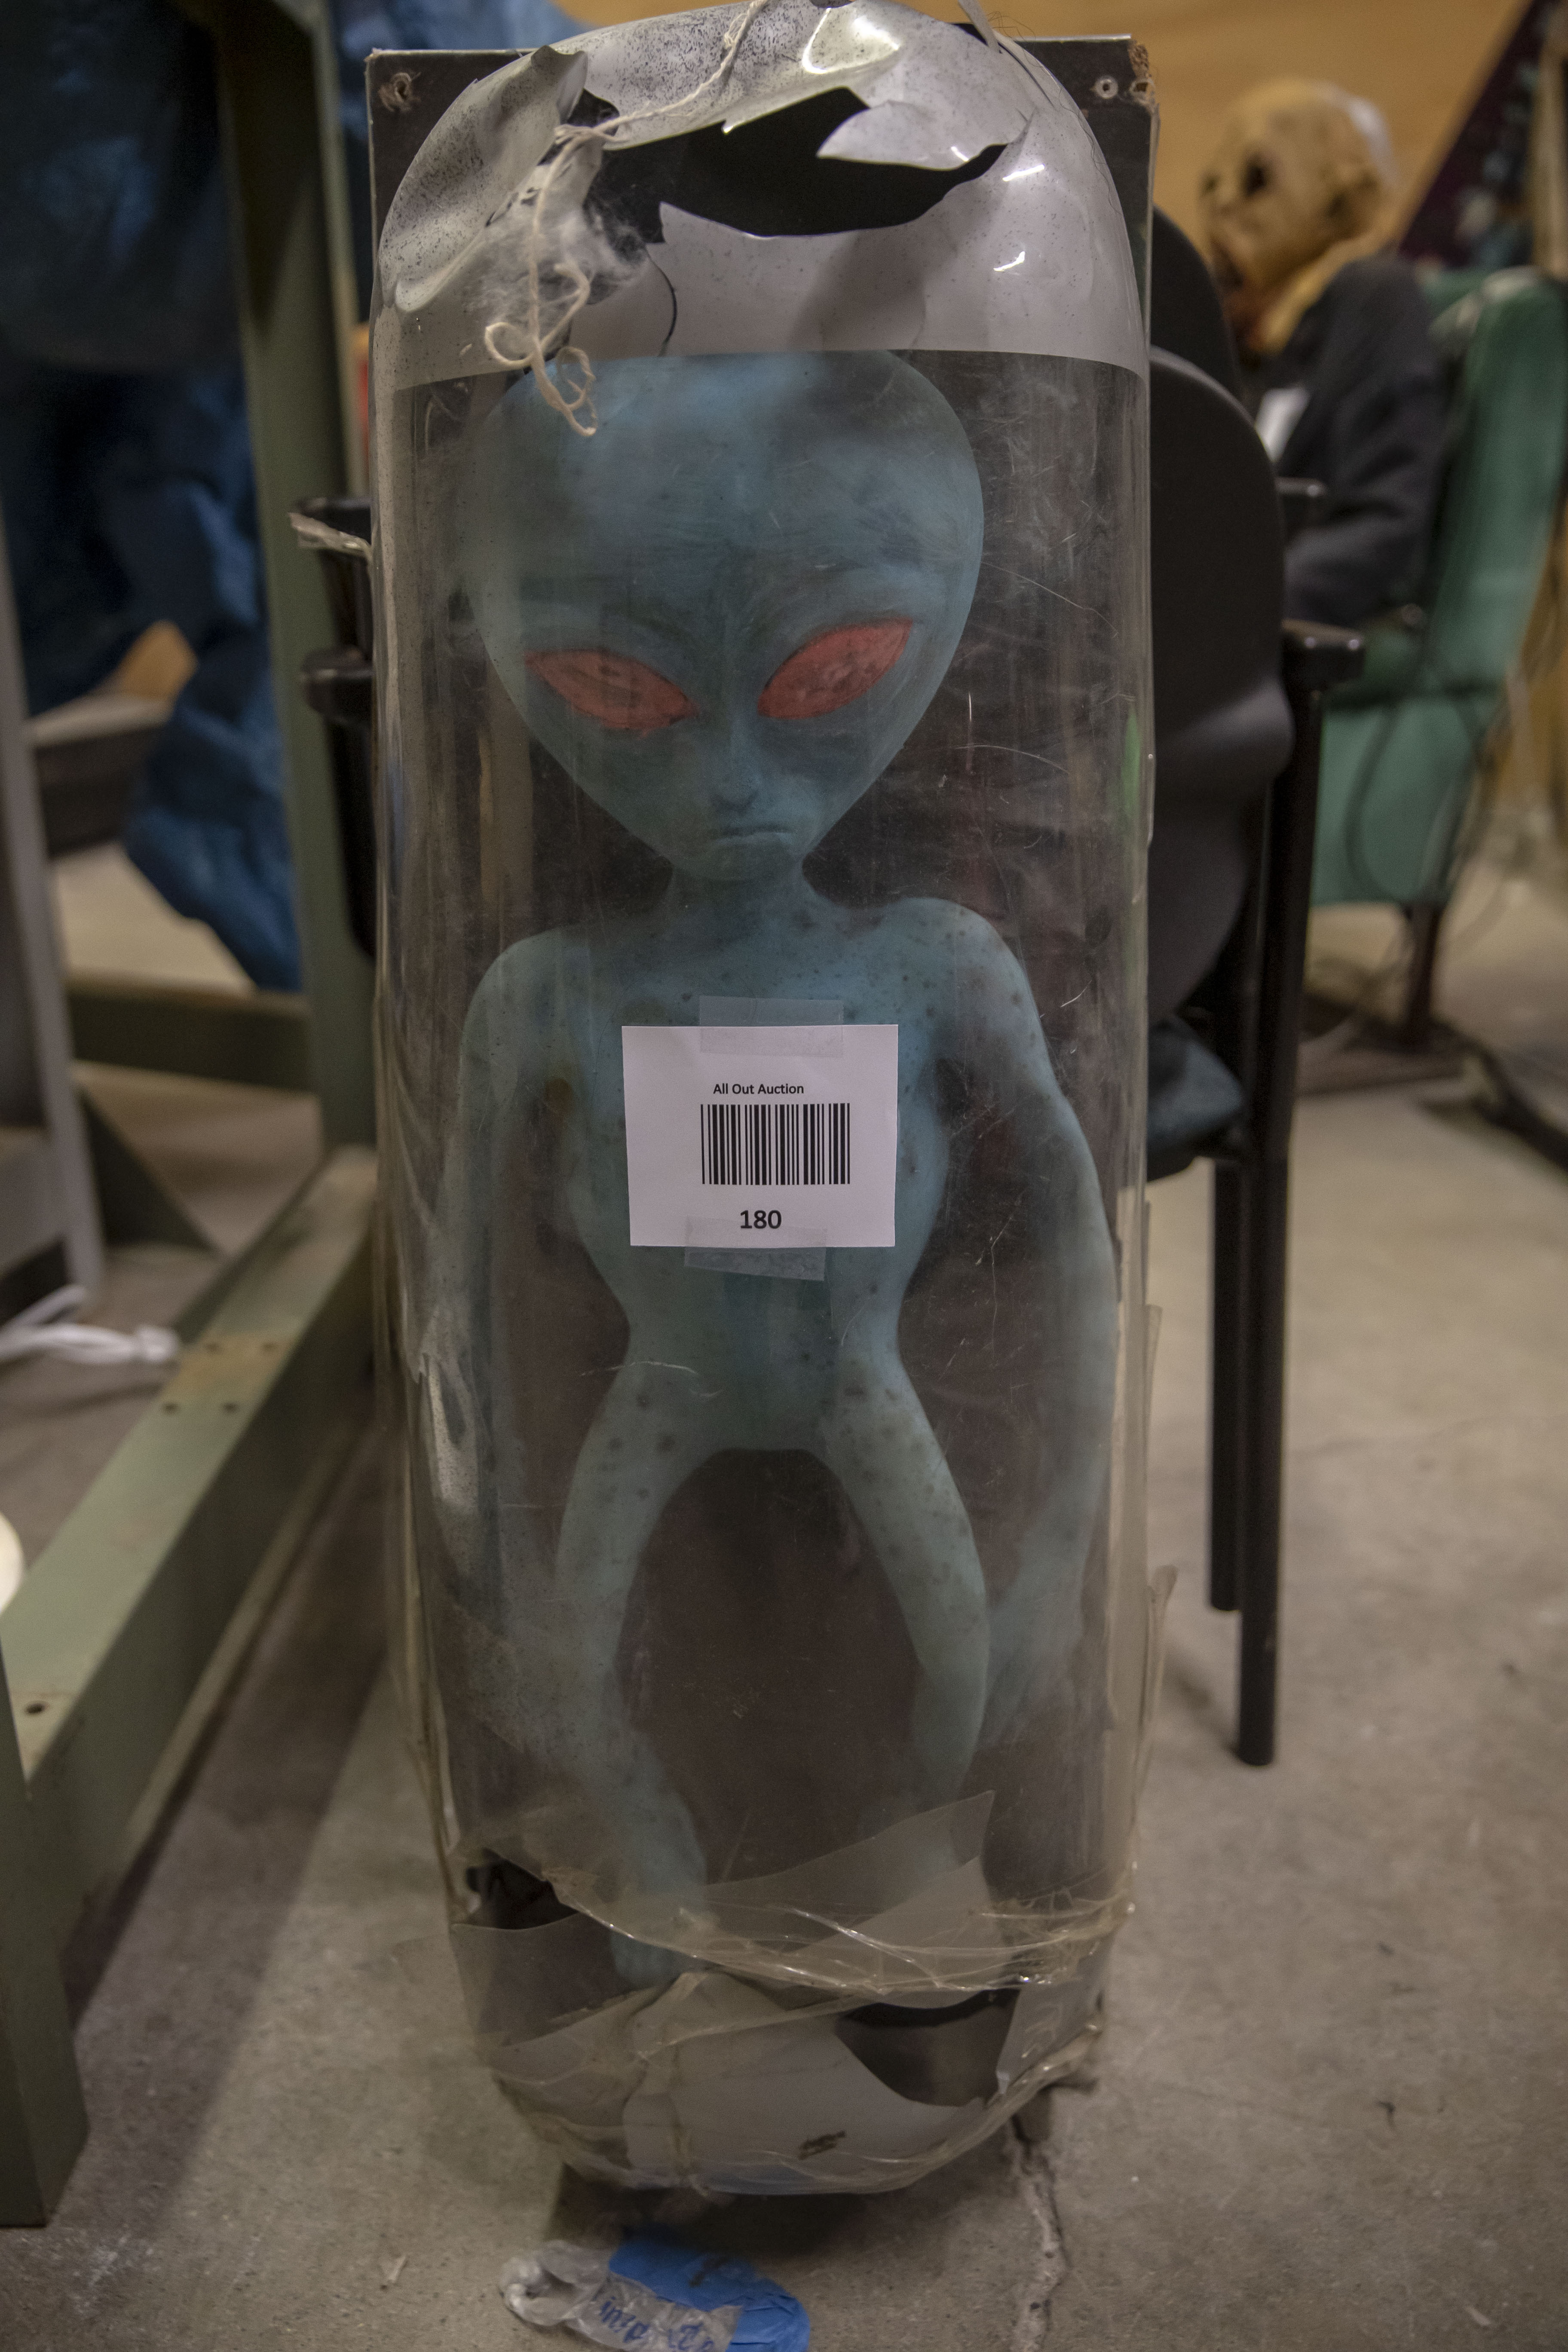 Lot 180 - Alien. Used, shows commercial use. See pictures.